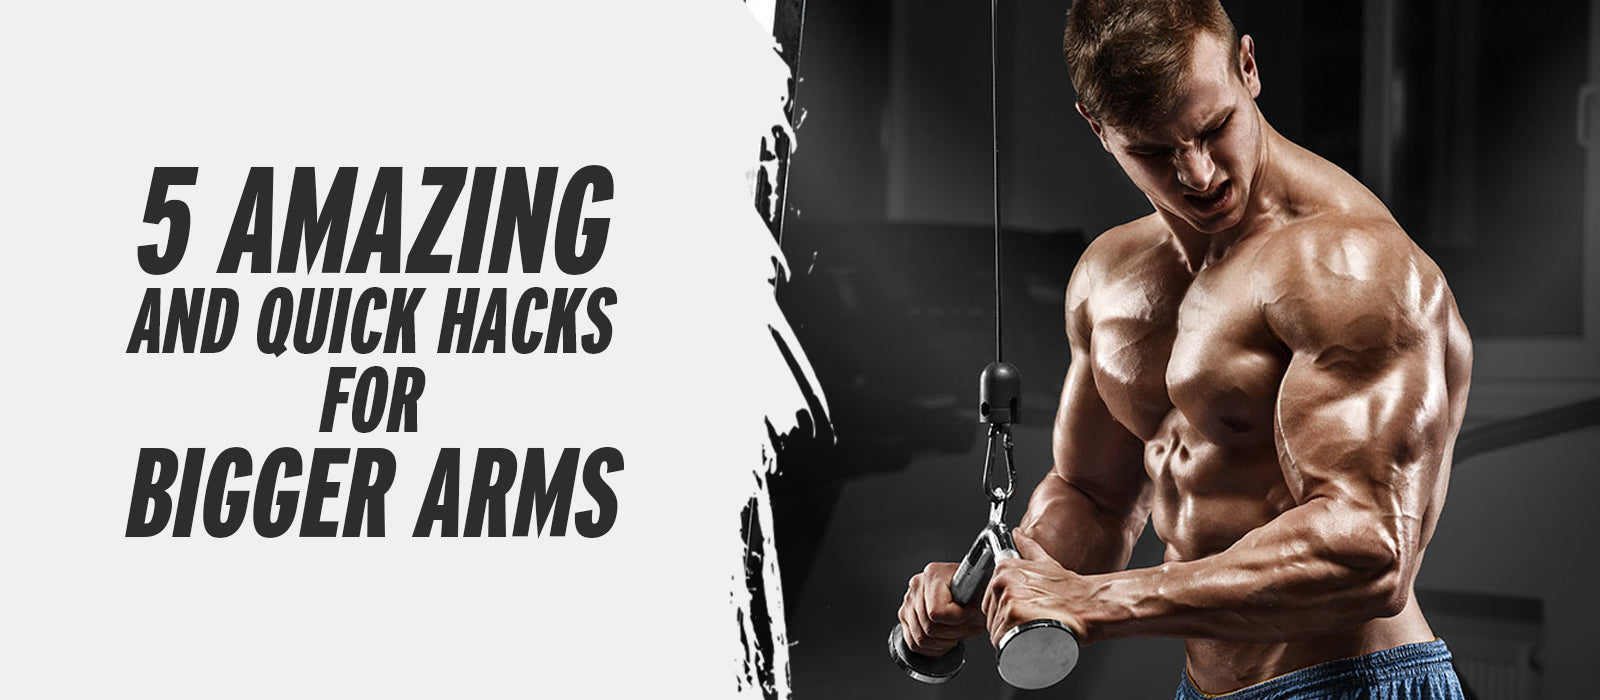 5 Amazing And Quick Hacks For Bigger Arms